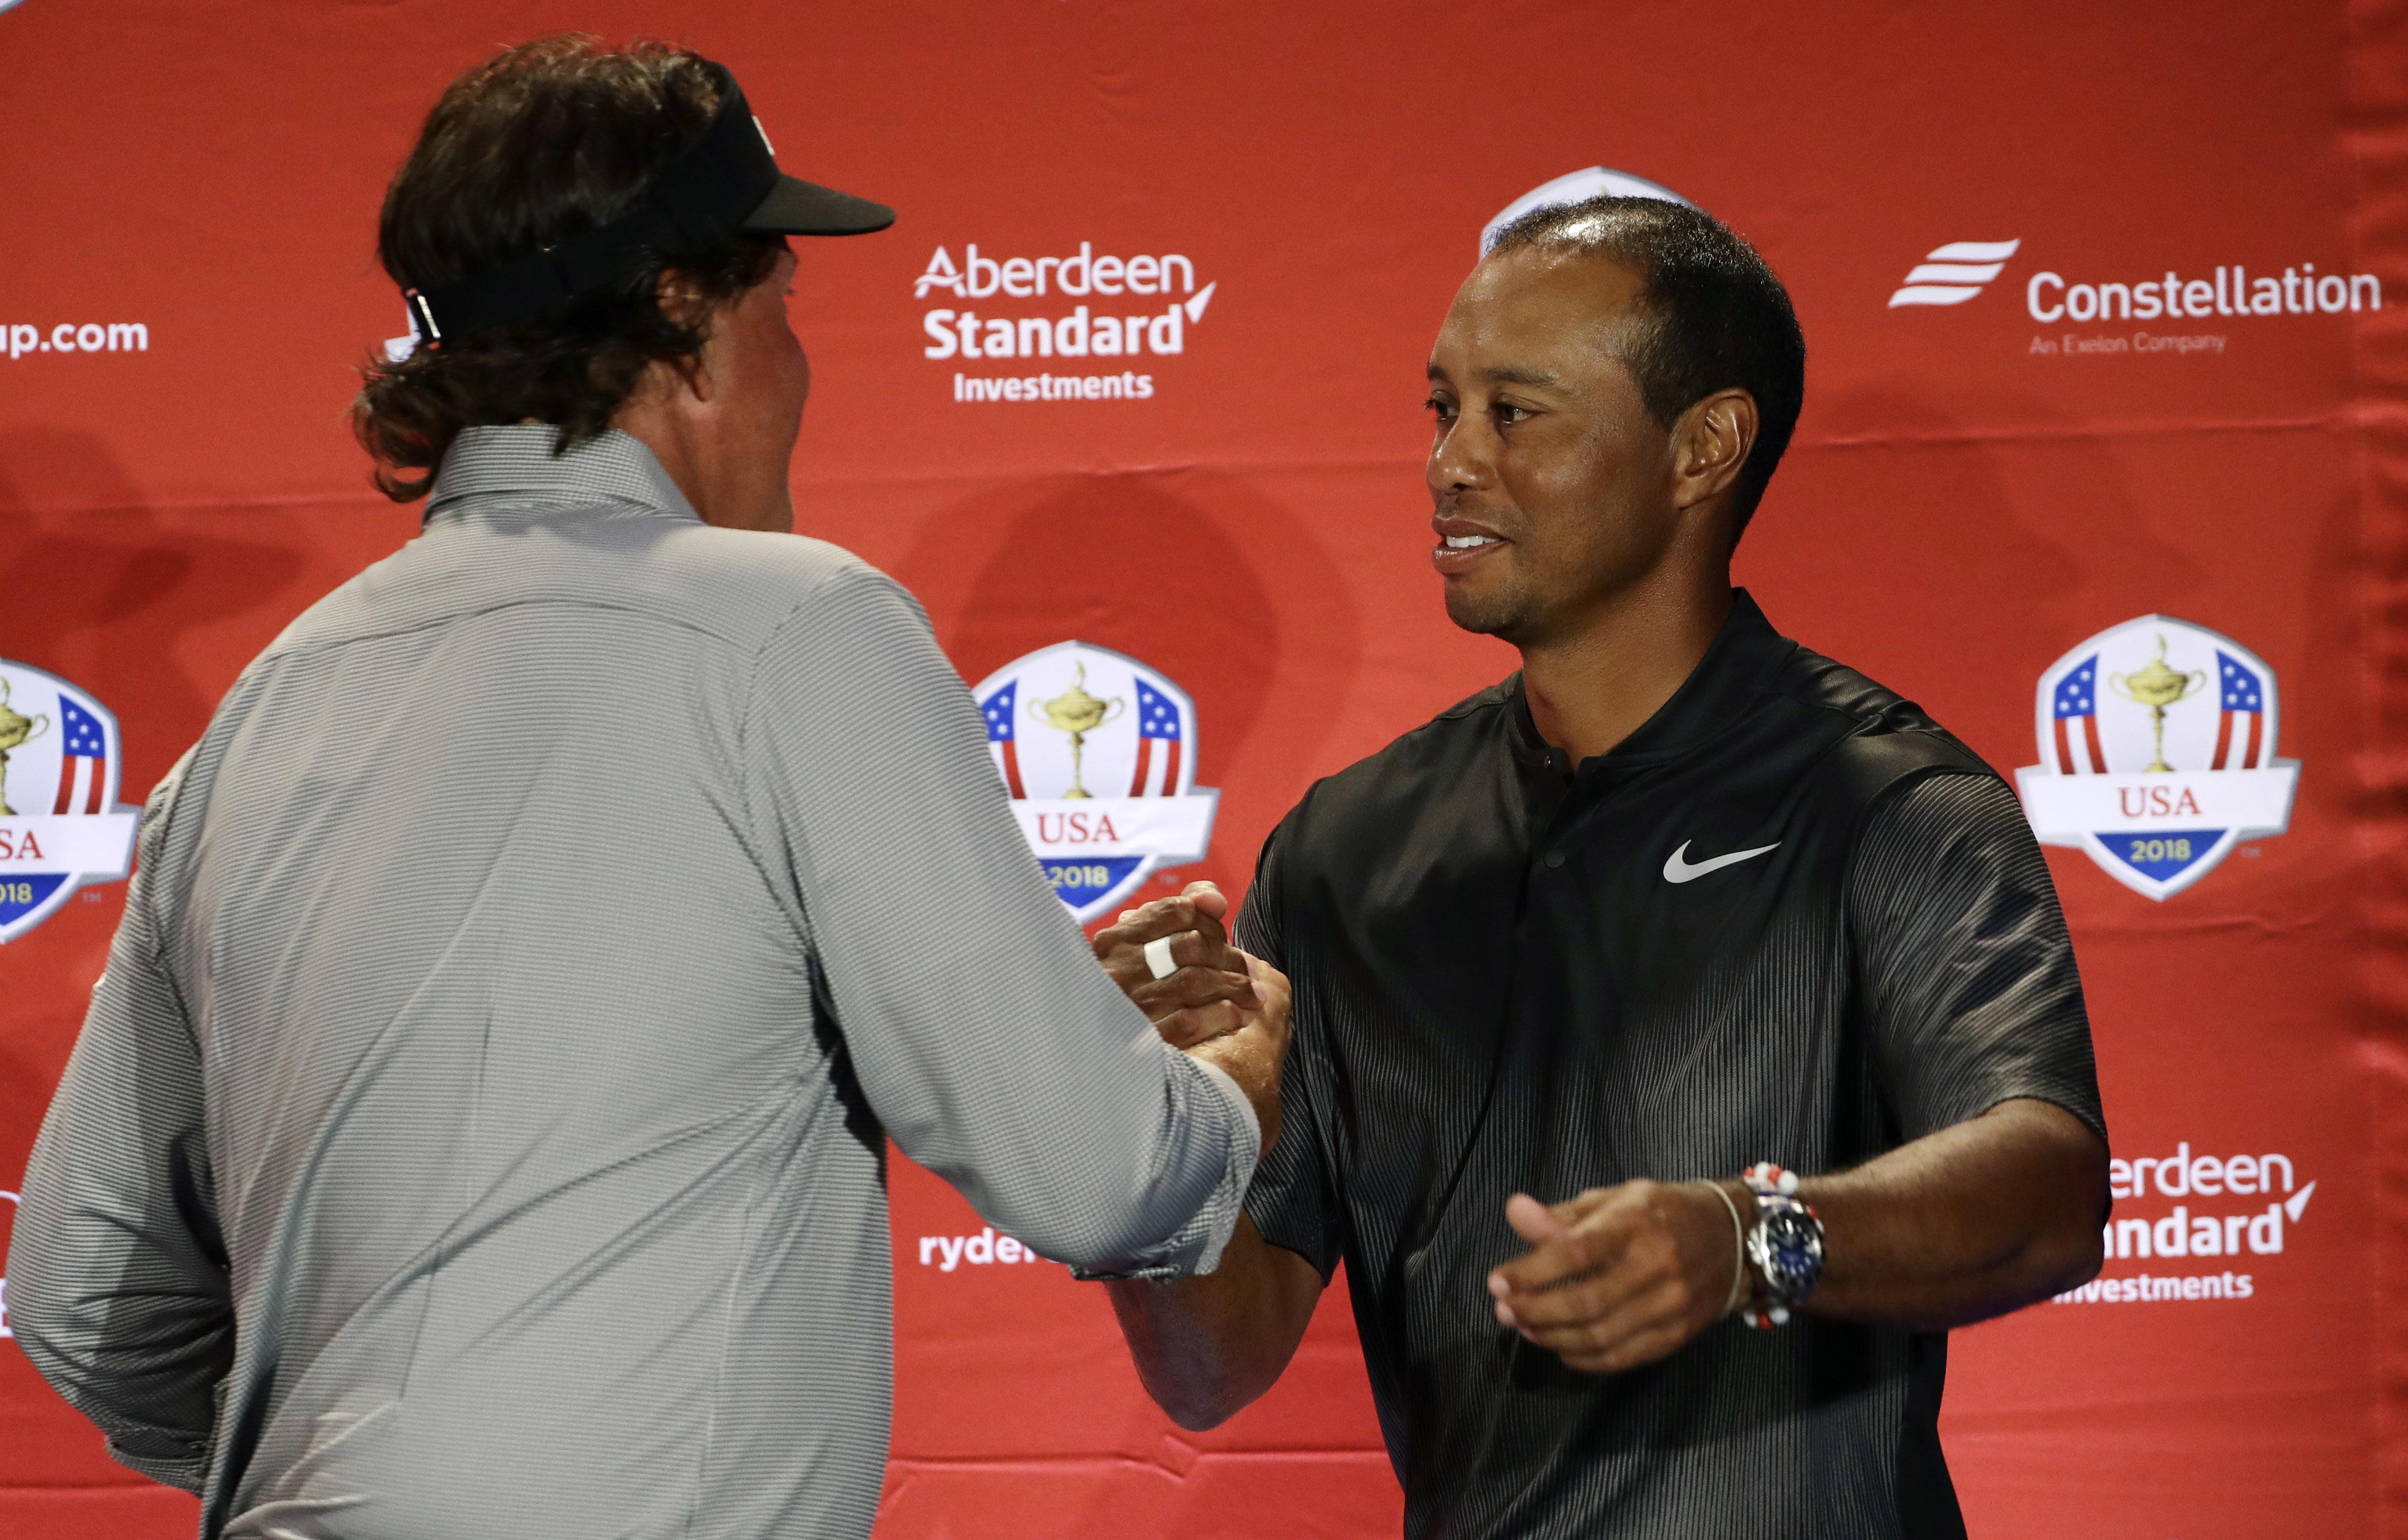 Woods and Mickelson were once foes but they have a growing bromance these days